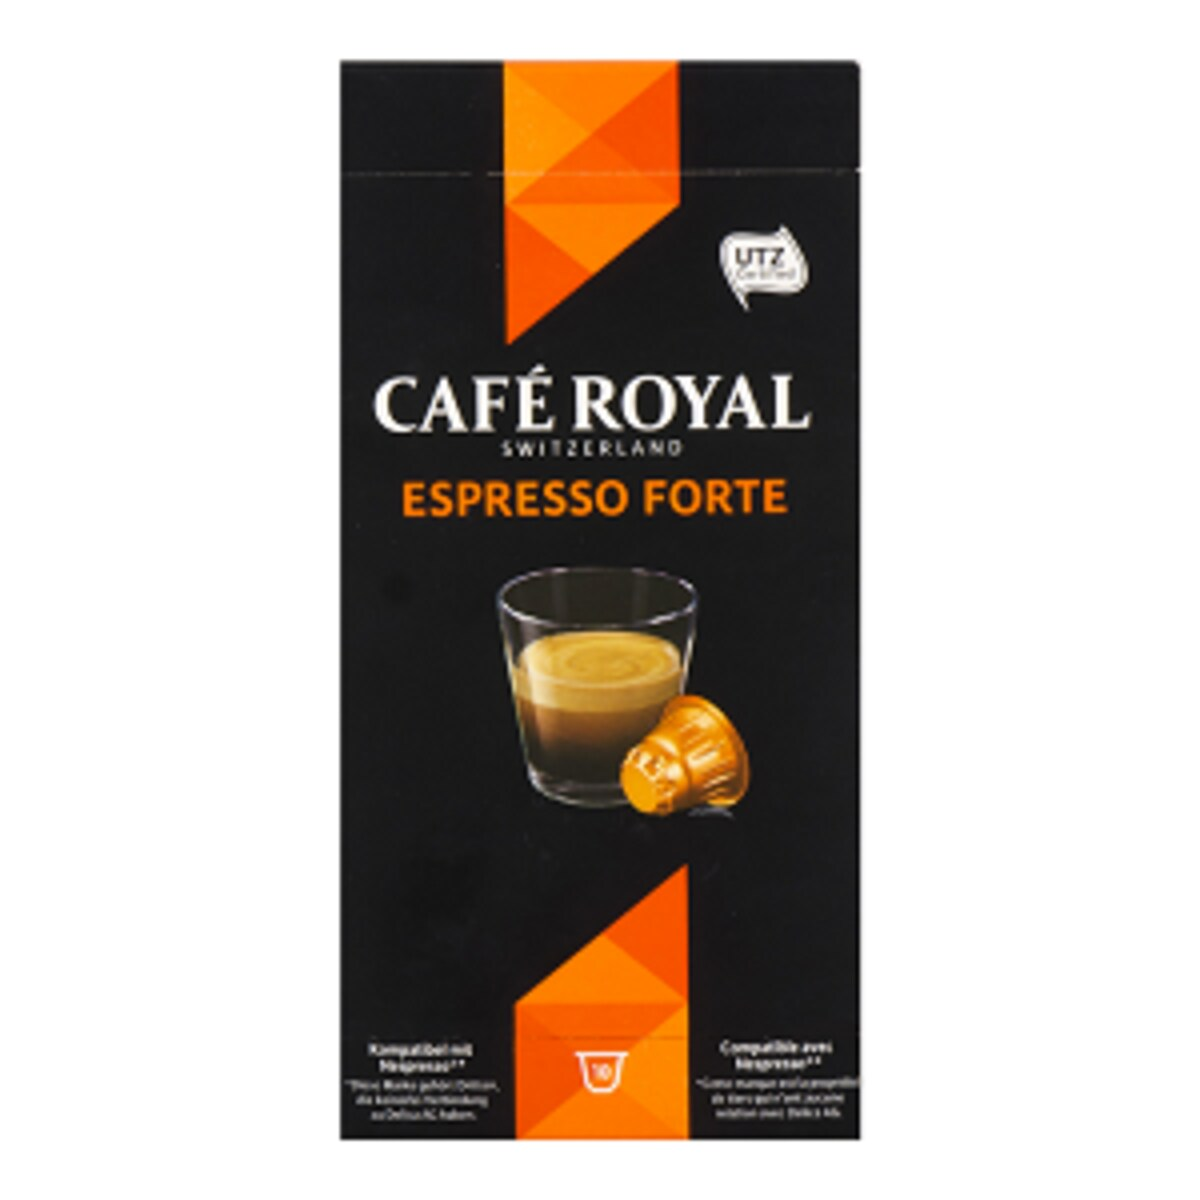 Cafe Royal Espresso Forte 10бр капсули за Nespresso кафемашина